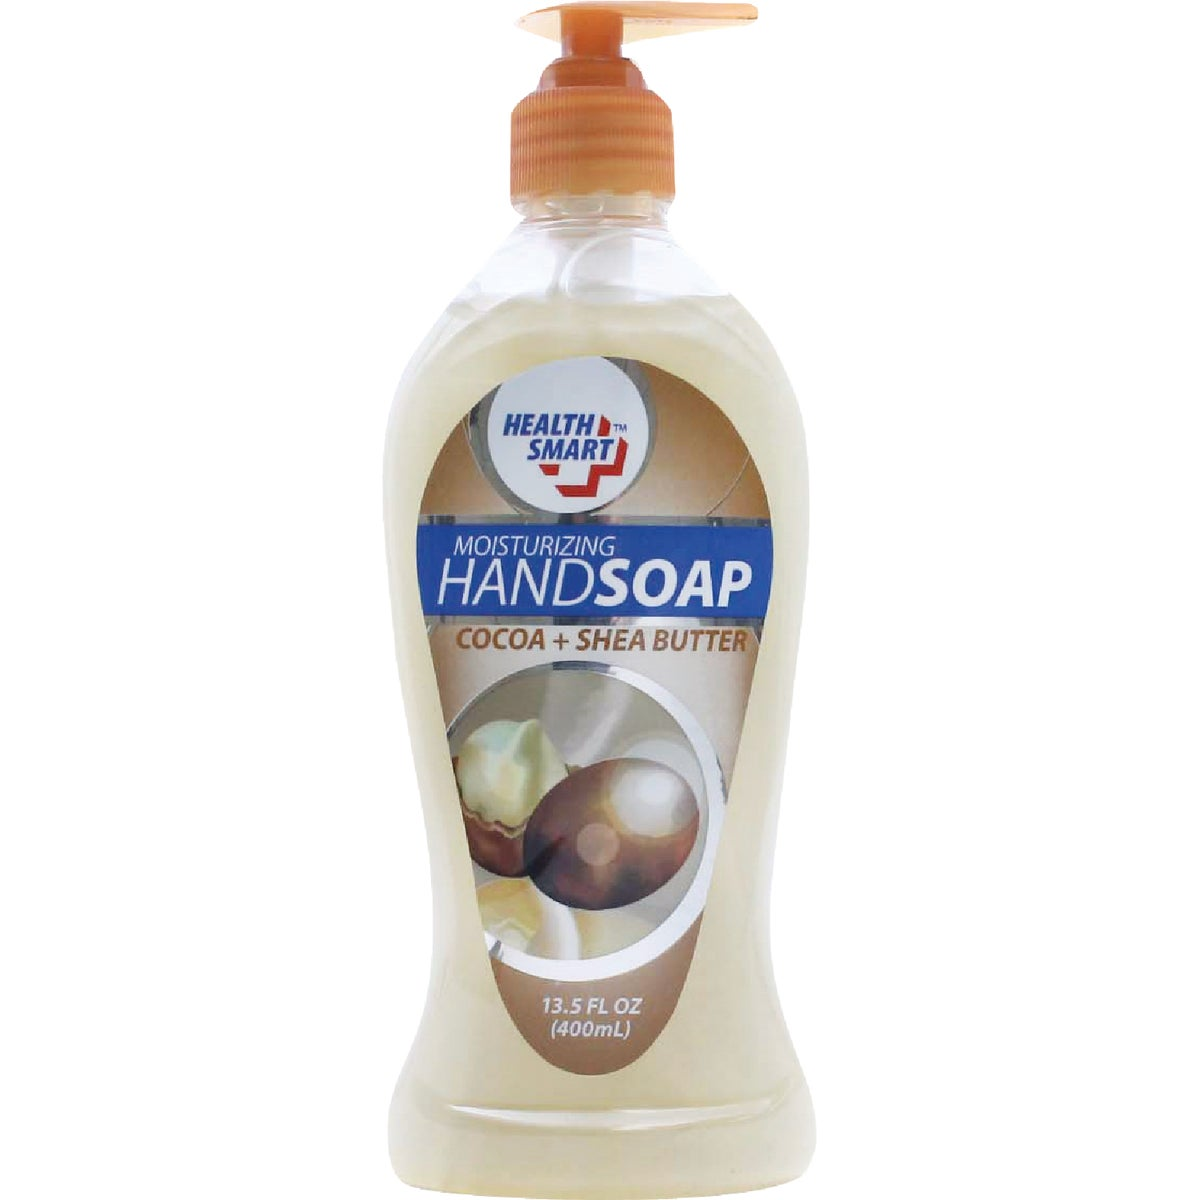 7.5OZ MELON HAND SOAP - 90666 by Personal Care Prod